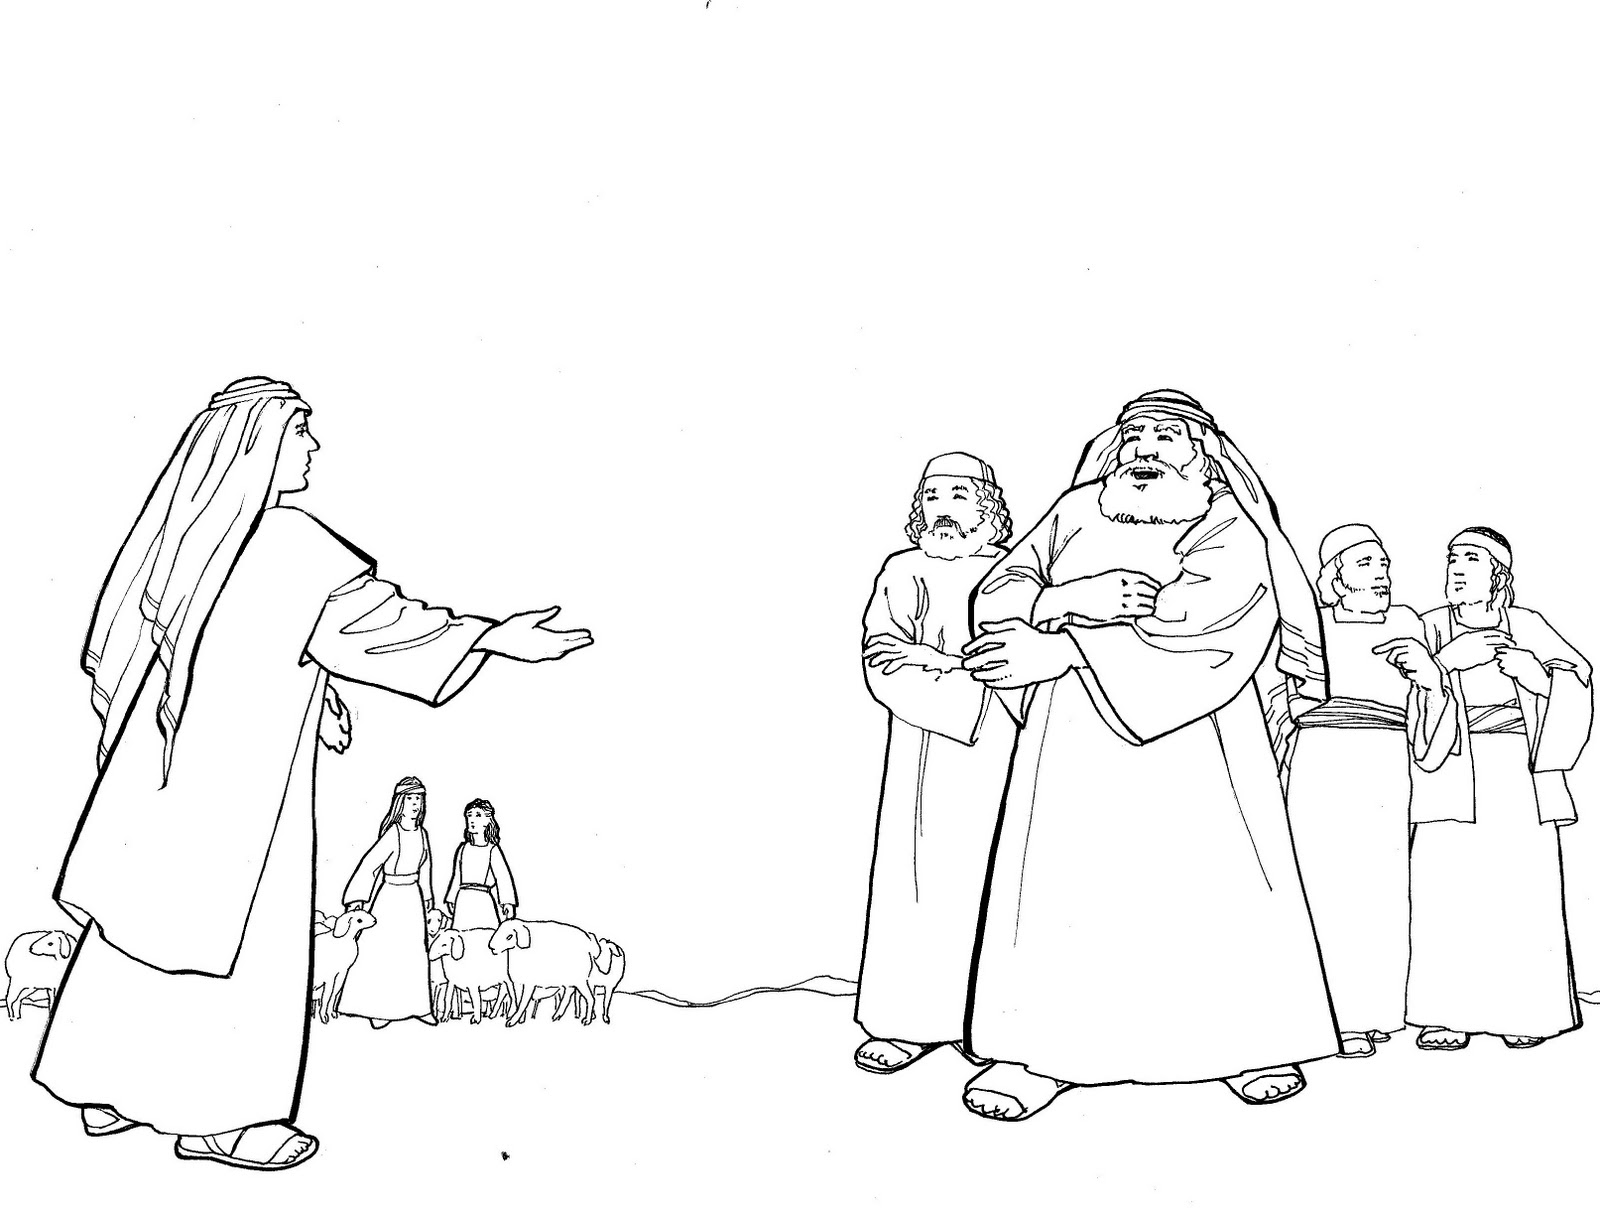 jacob meets esau coloring pages - photo#21